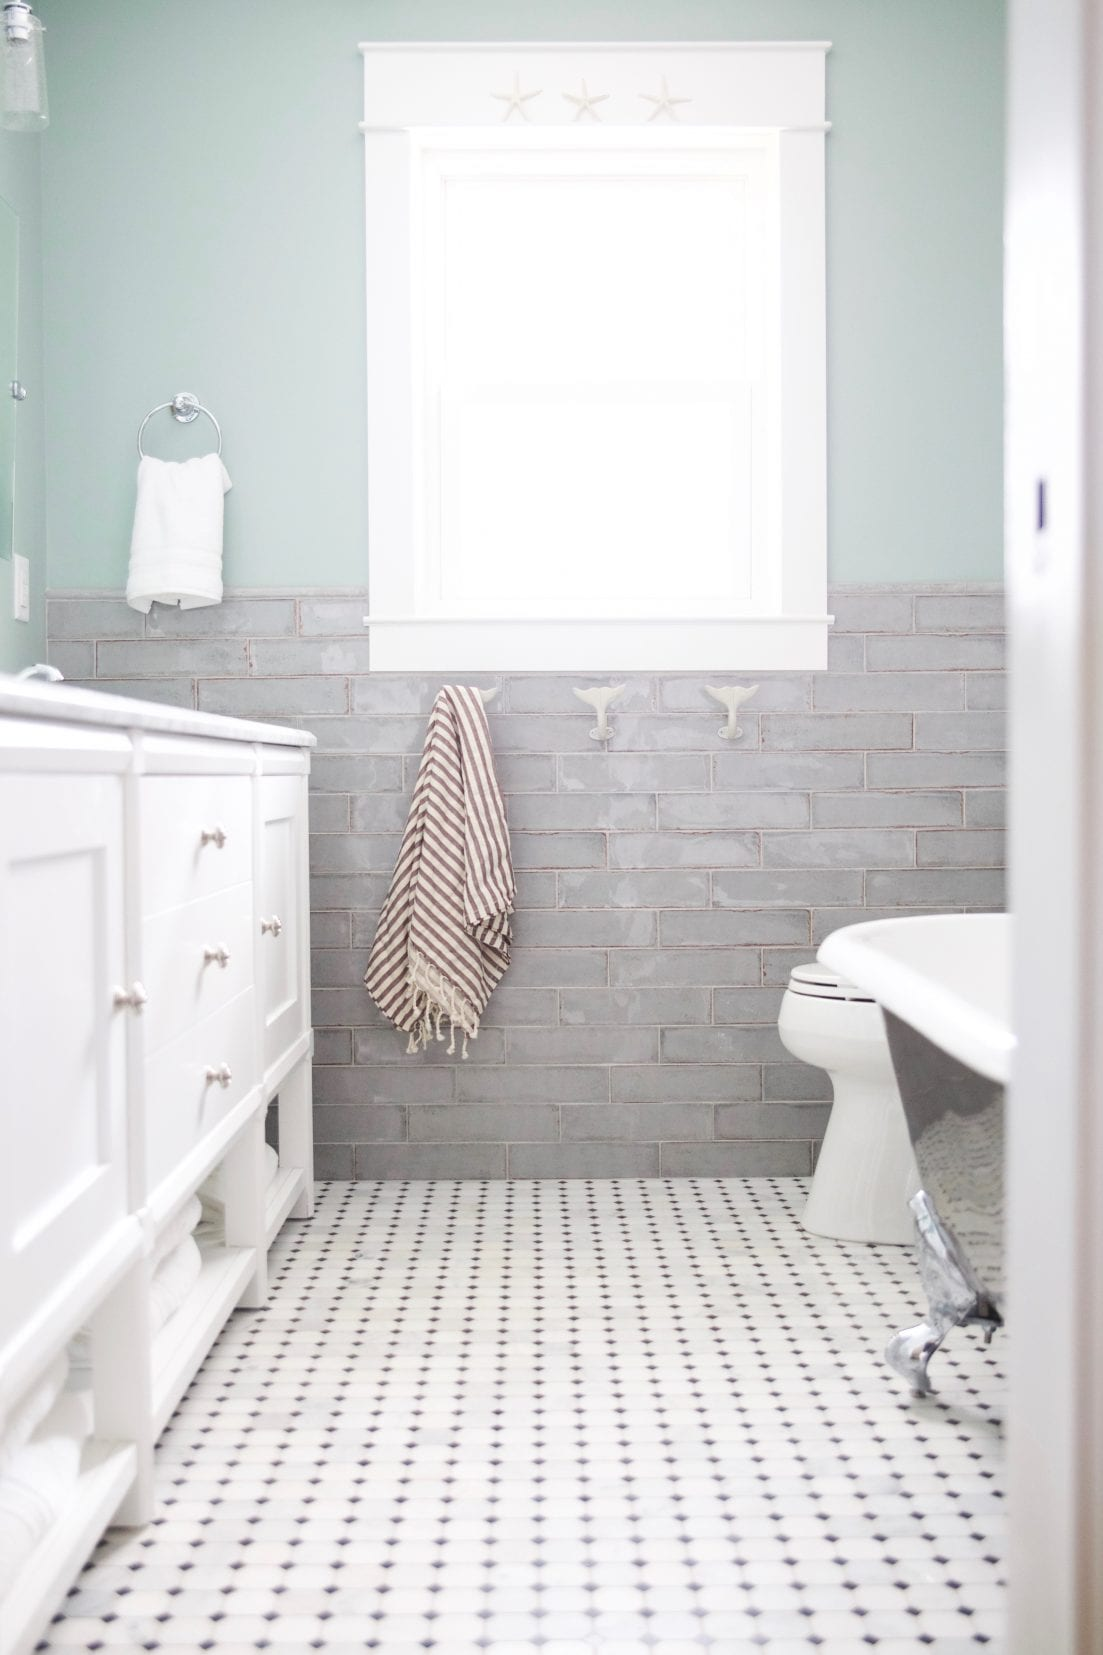 sisco hallway bath redo - The Handmade Home